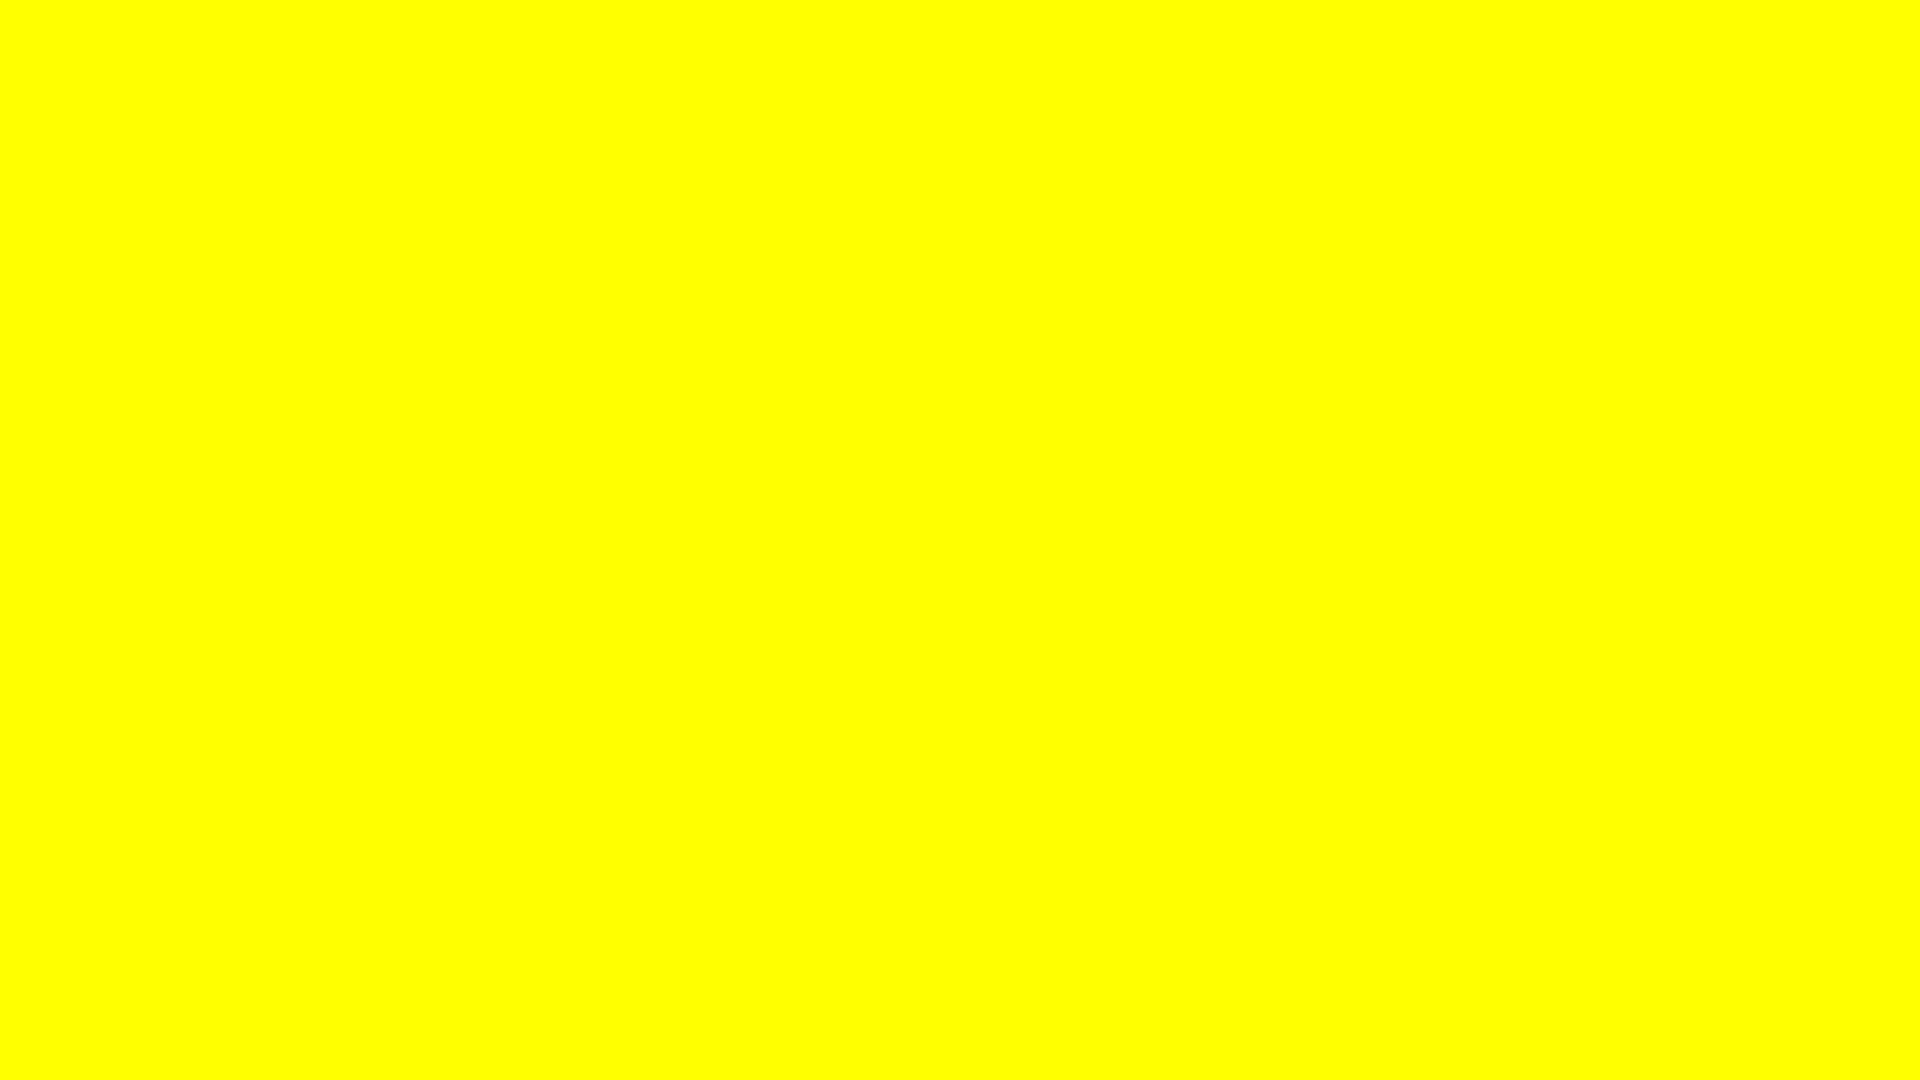 Yellow Solid Color Background